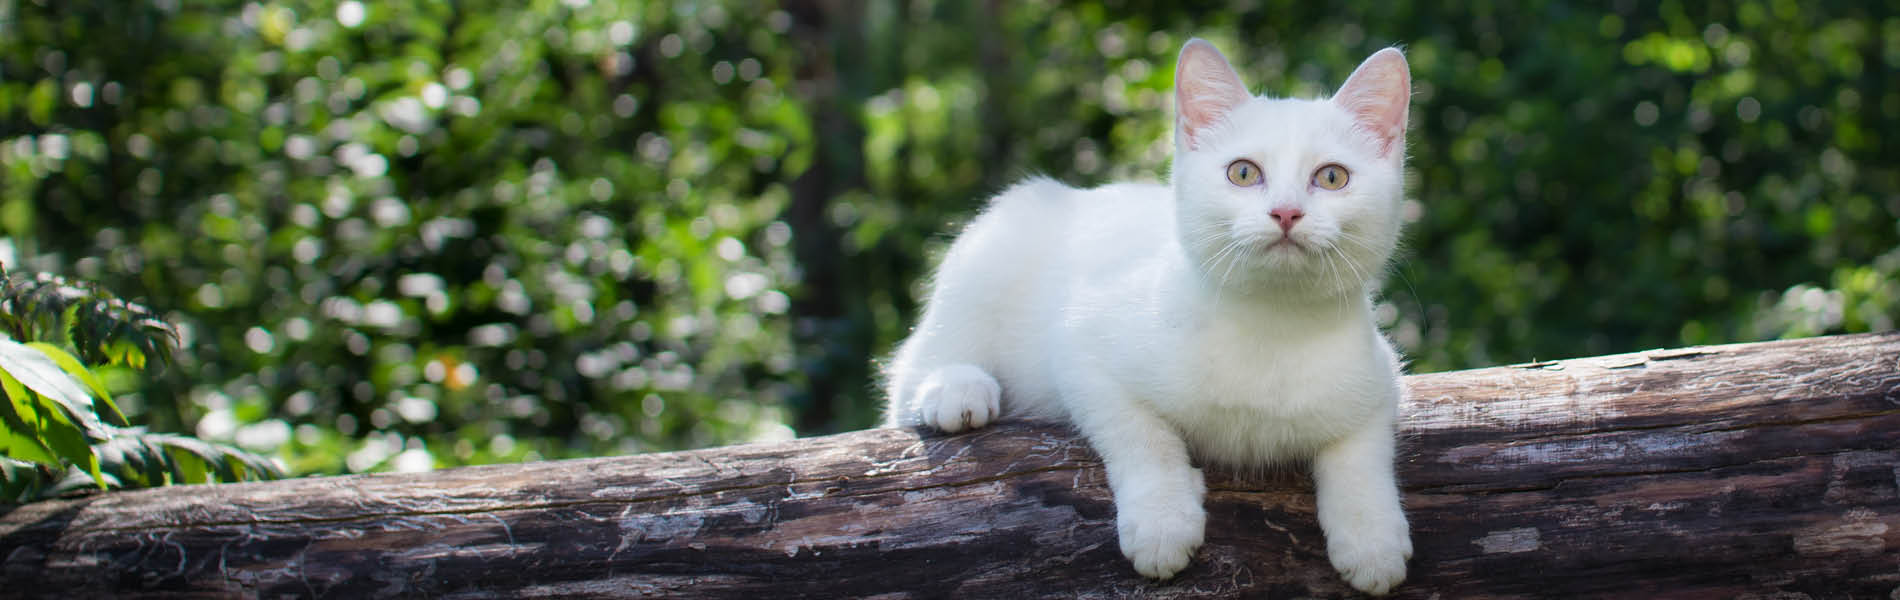 Protection antiparasites pour chats 5